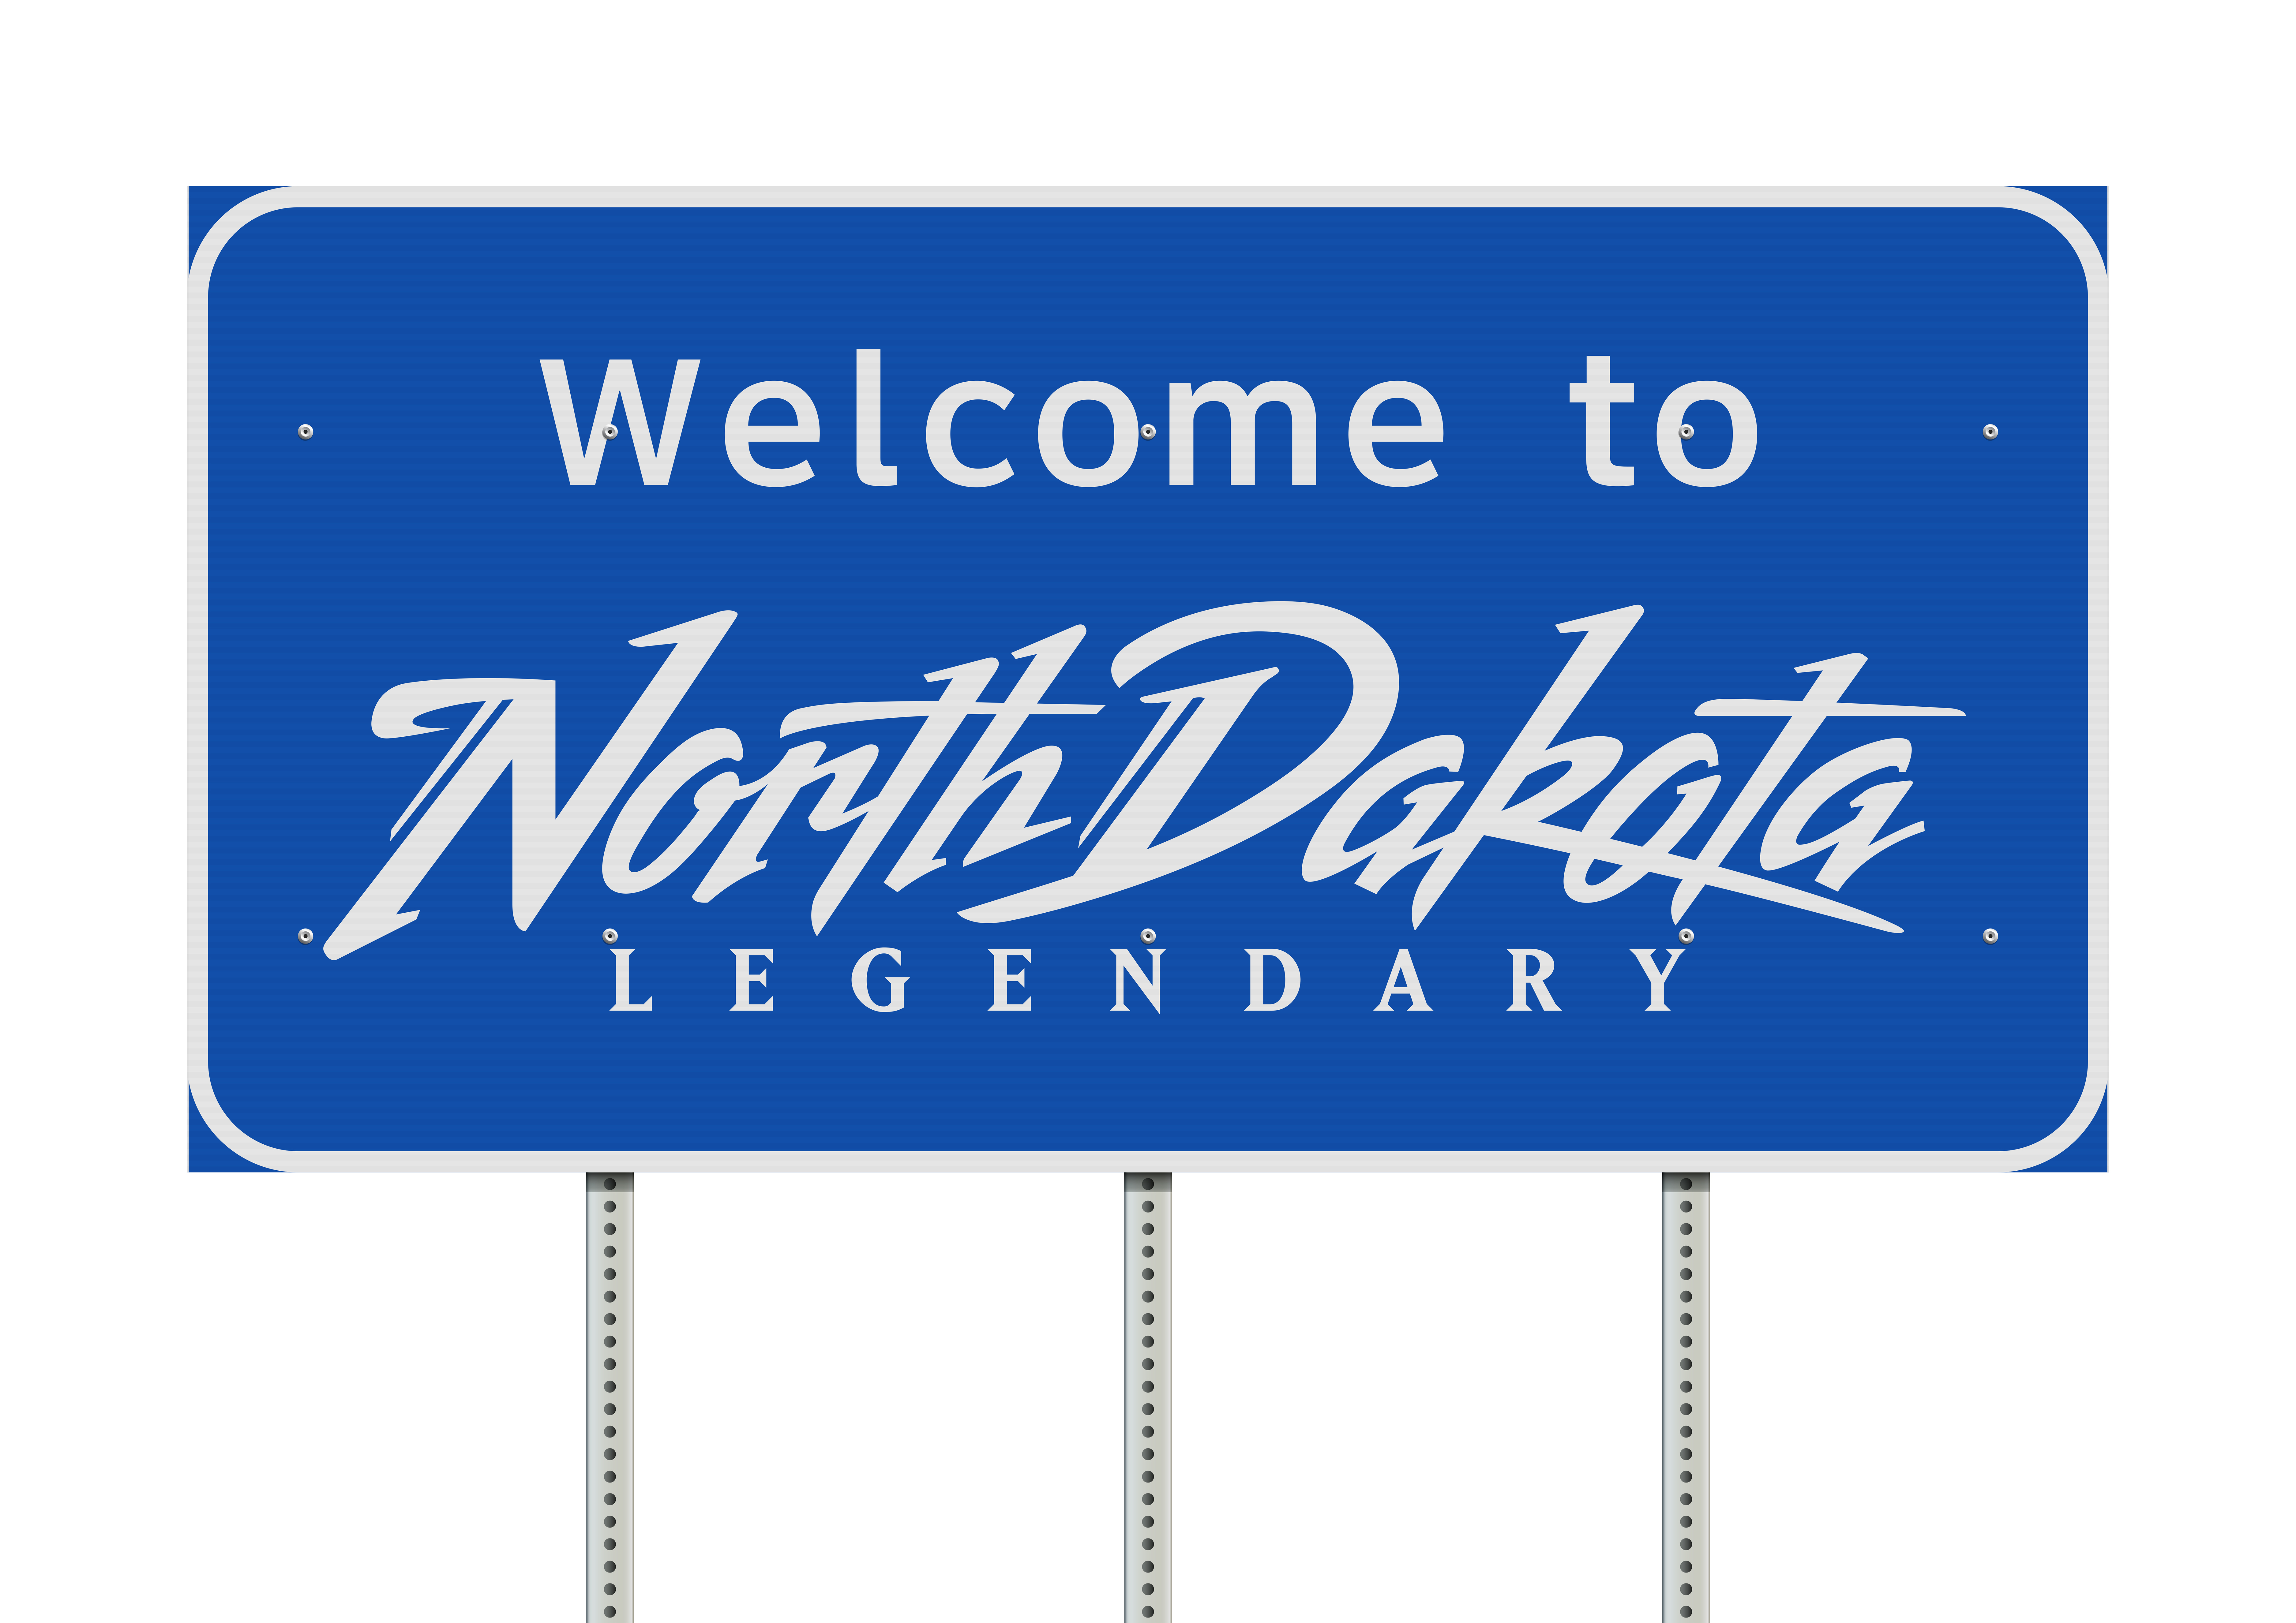 North Dakota: An Innovative and Leading Cybersecurity State